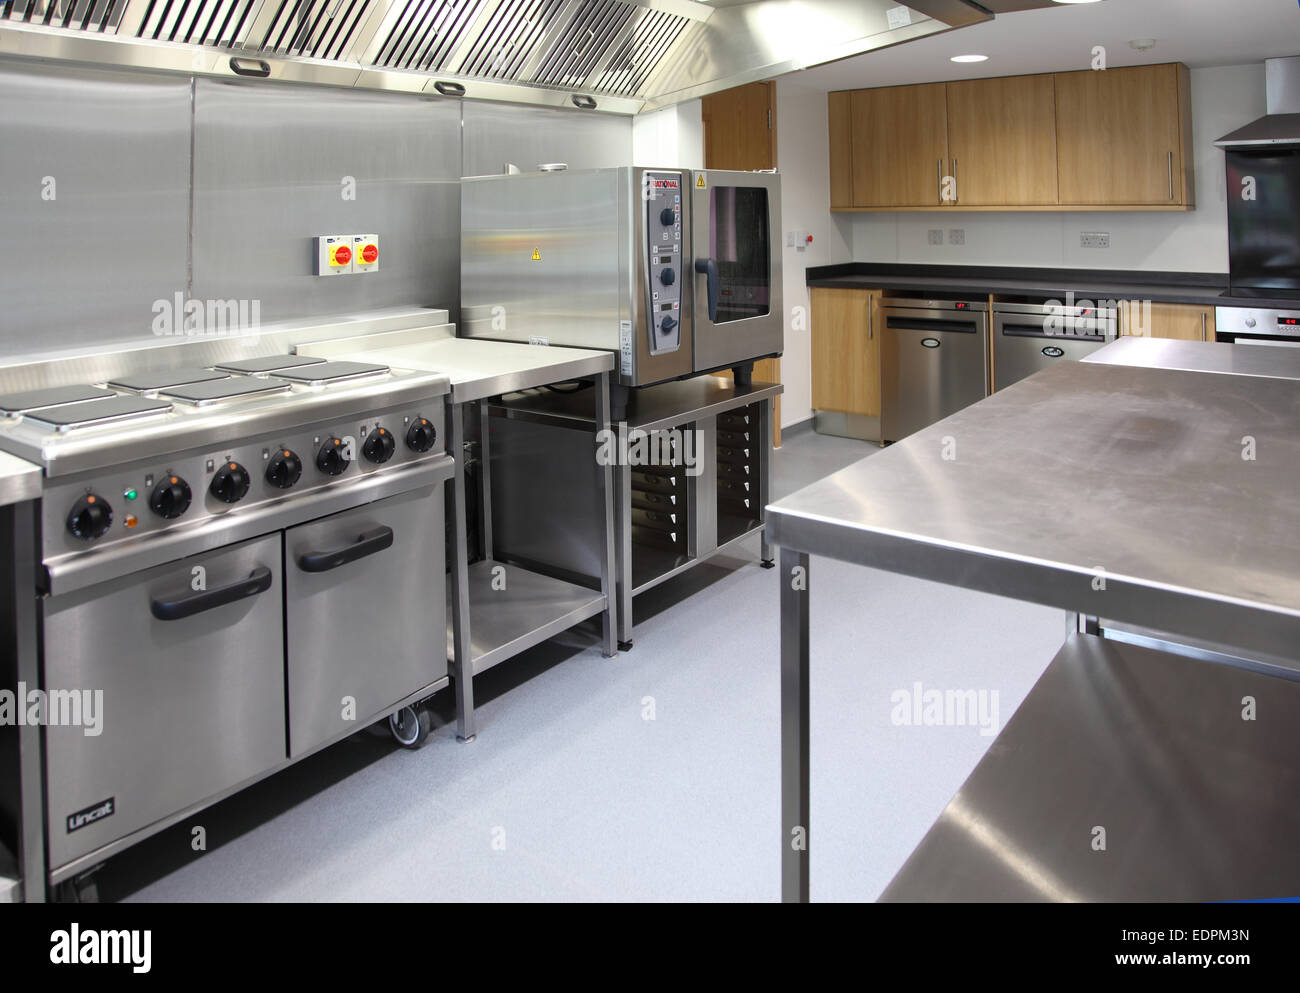 A Commercial Kitchen In A Modern Care Home For The Elderly. Shown Empty  With Equipment Only.